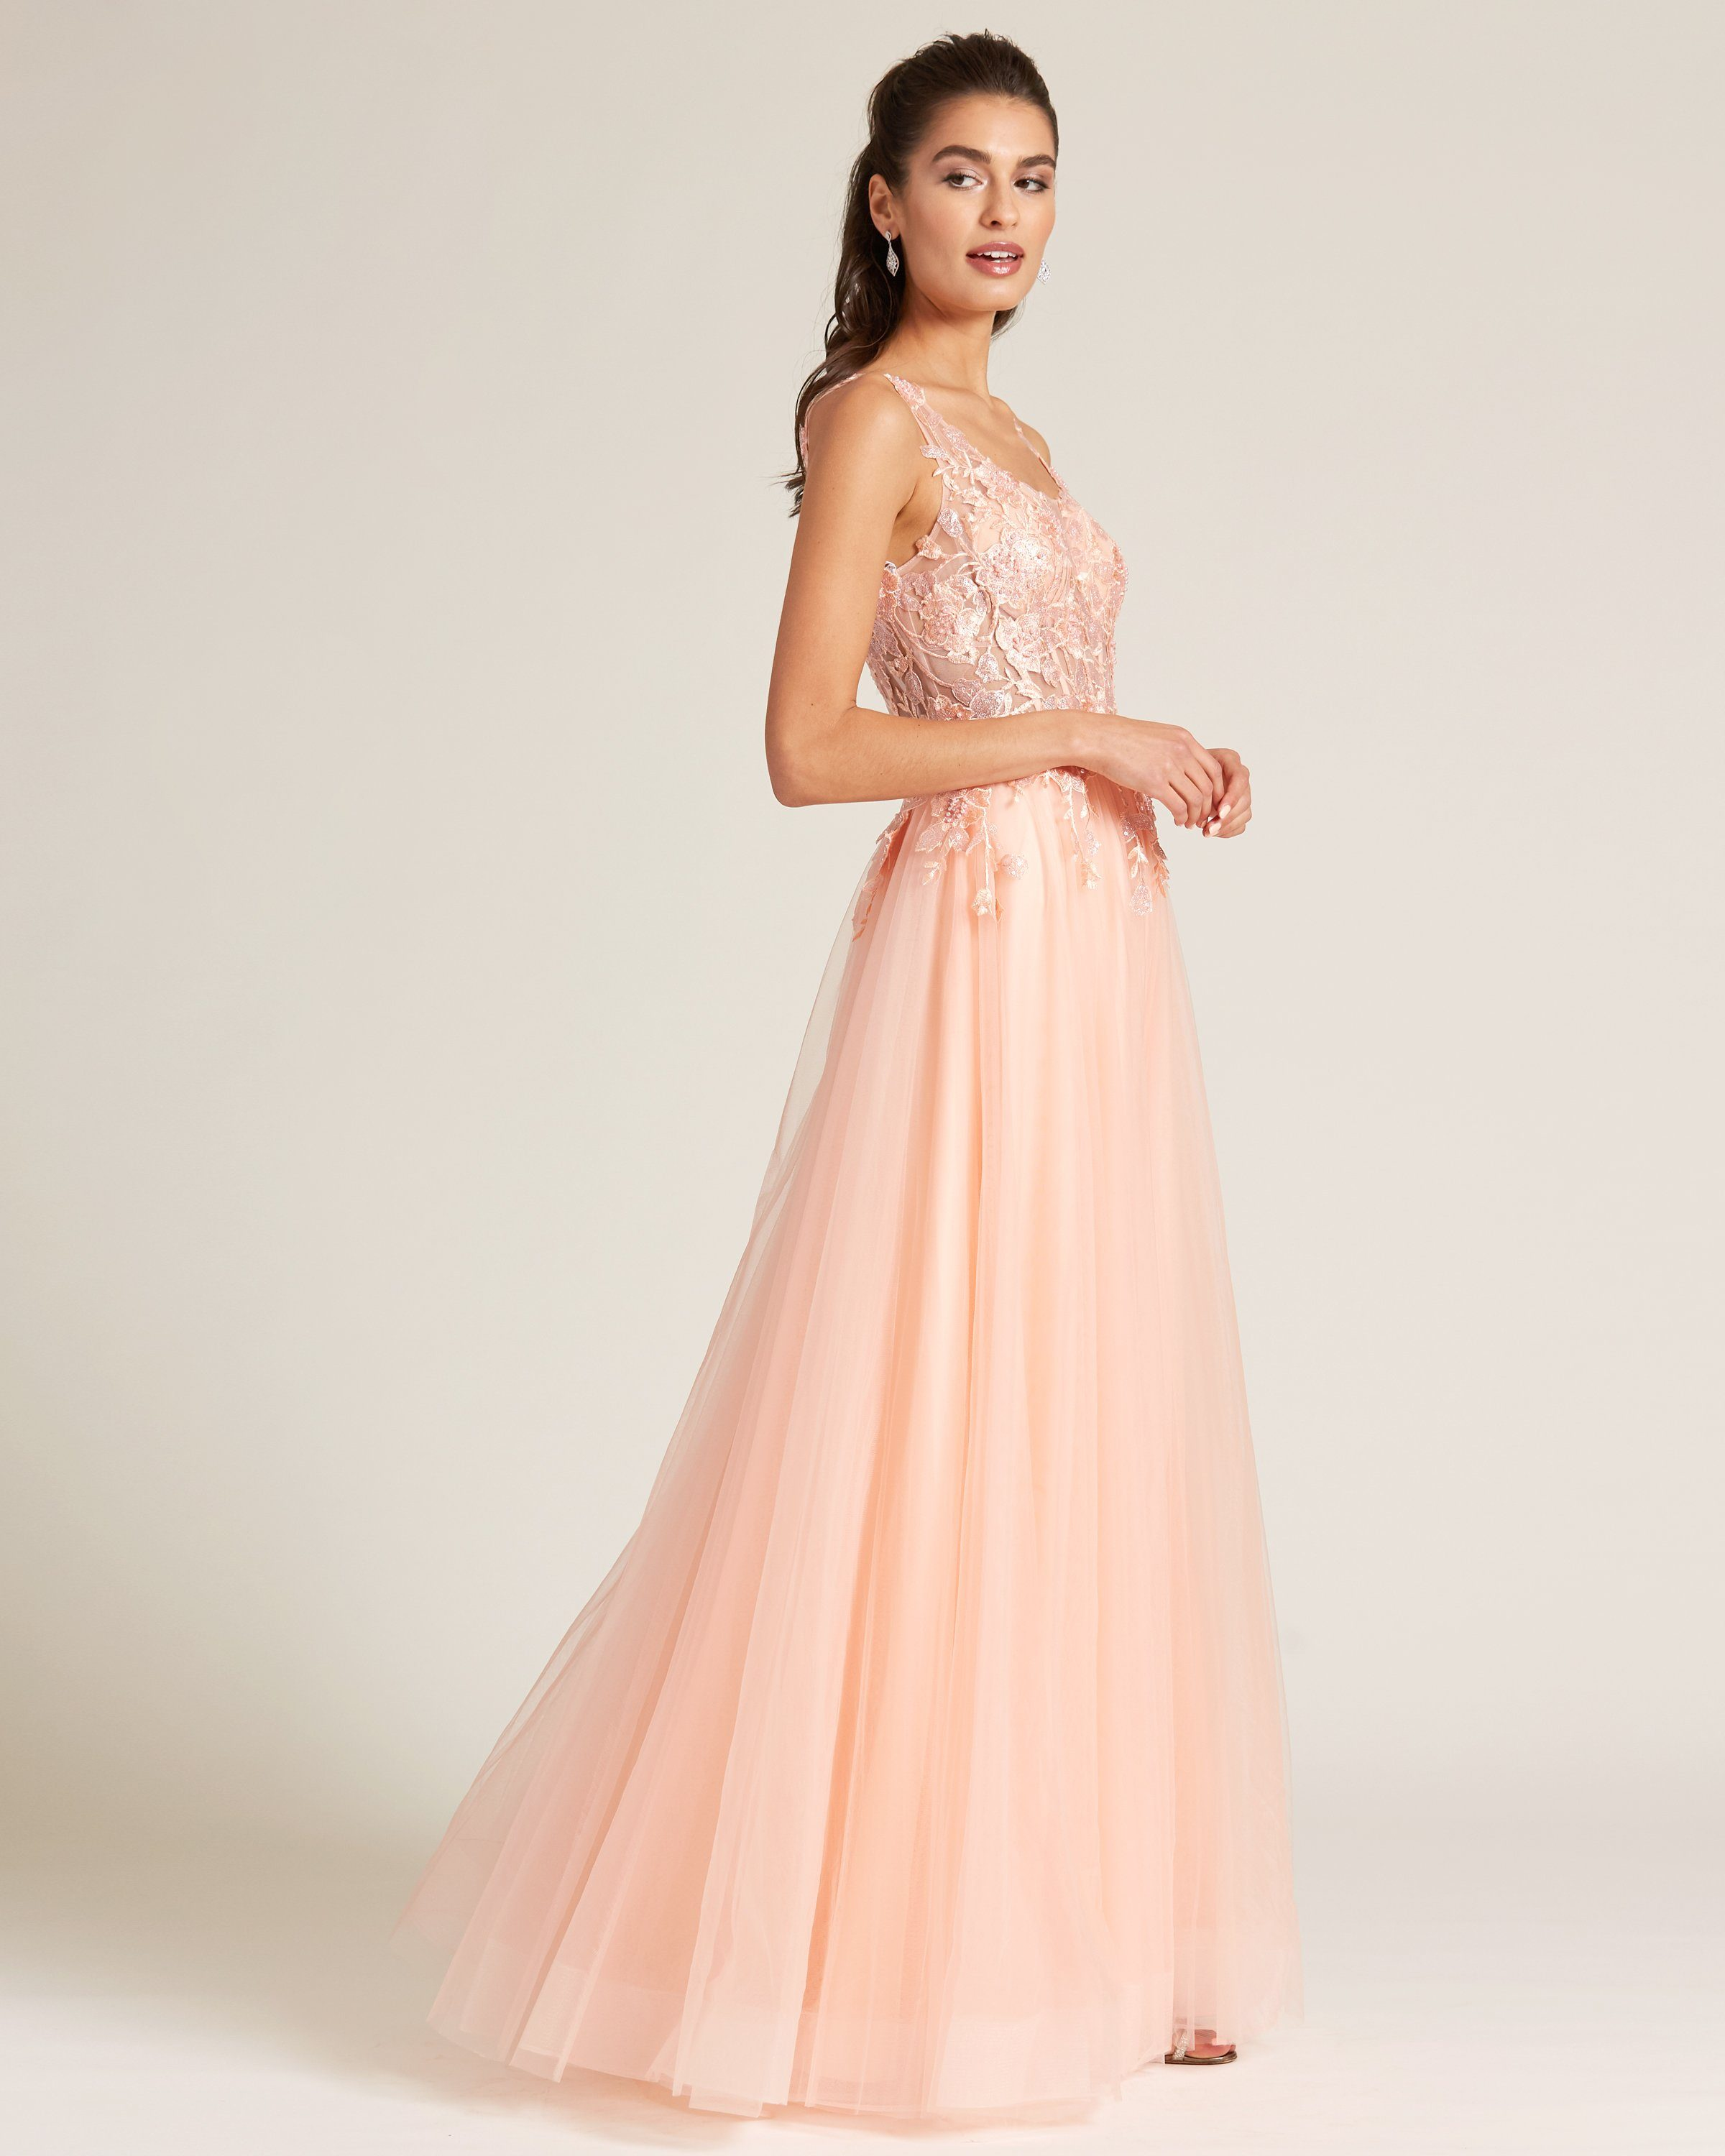 [Pre-Order] Princess Coral Floral Applique Chiffon Skirt Gown